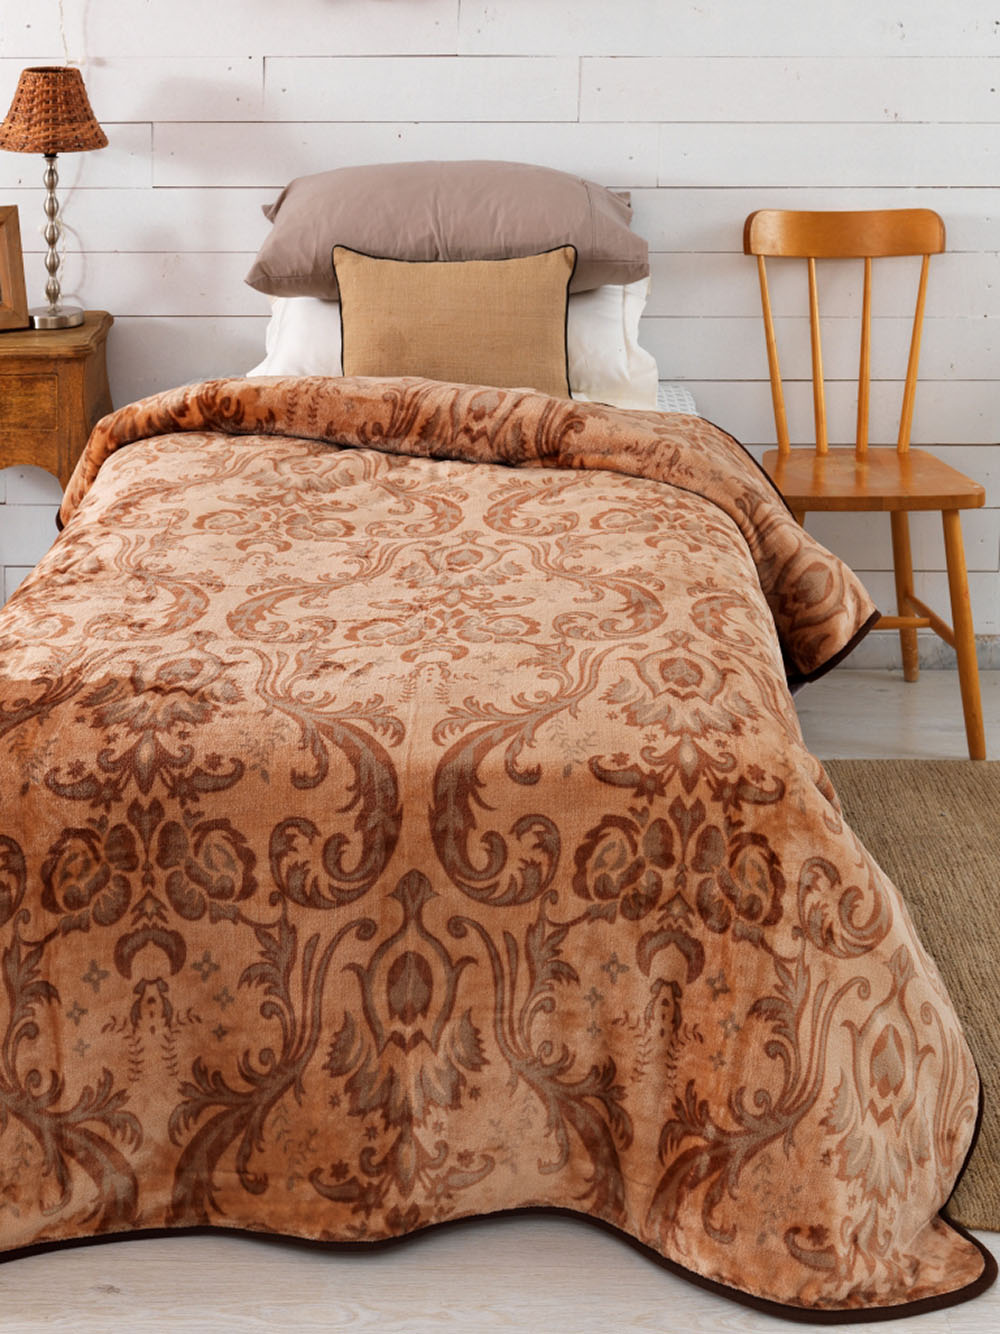 Κουβέρτα Fleece Μονή 160×240 SY-245 Palamaiki Silky Collection